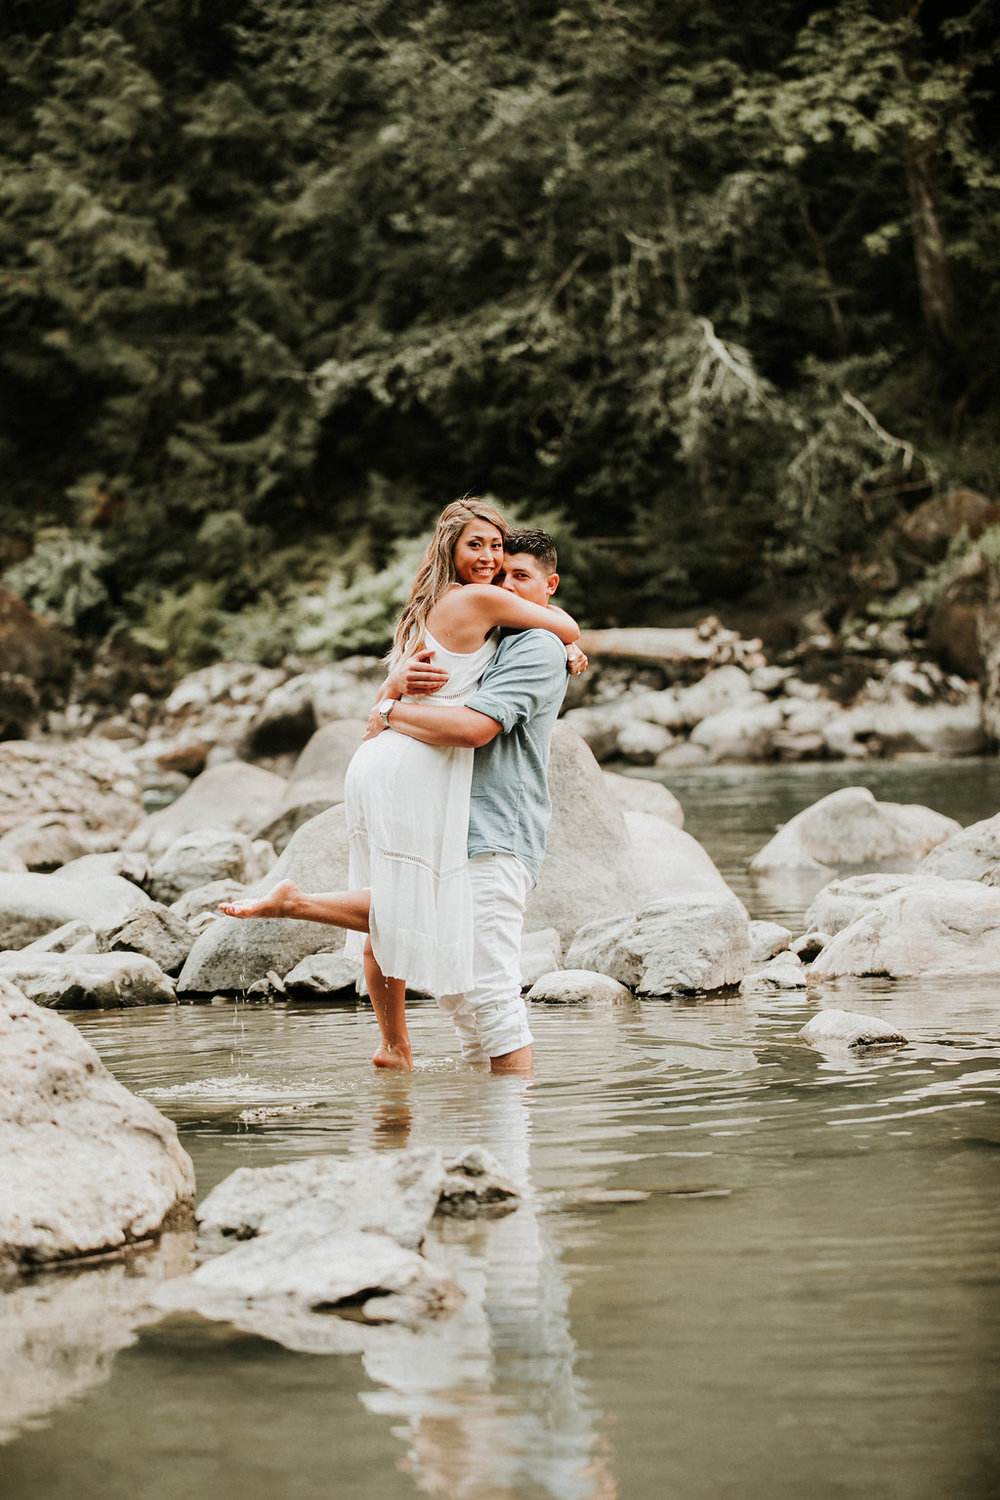 Engagement_locations_in_seattle_snoqualmie_falls_epic_engagement_photos_by_the_river